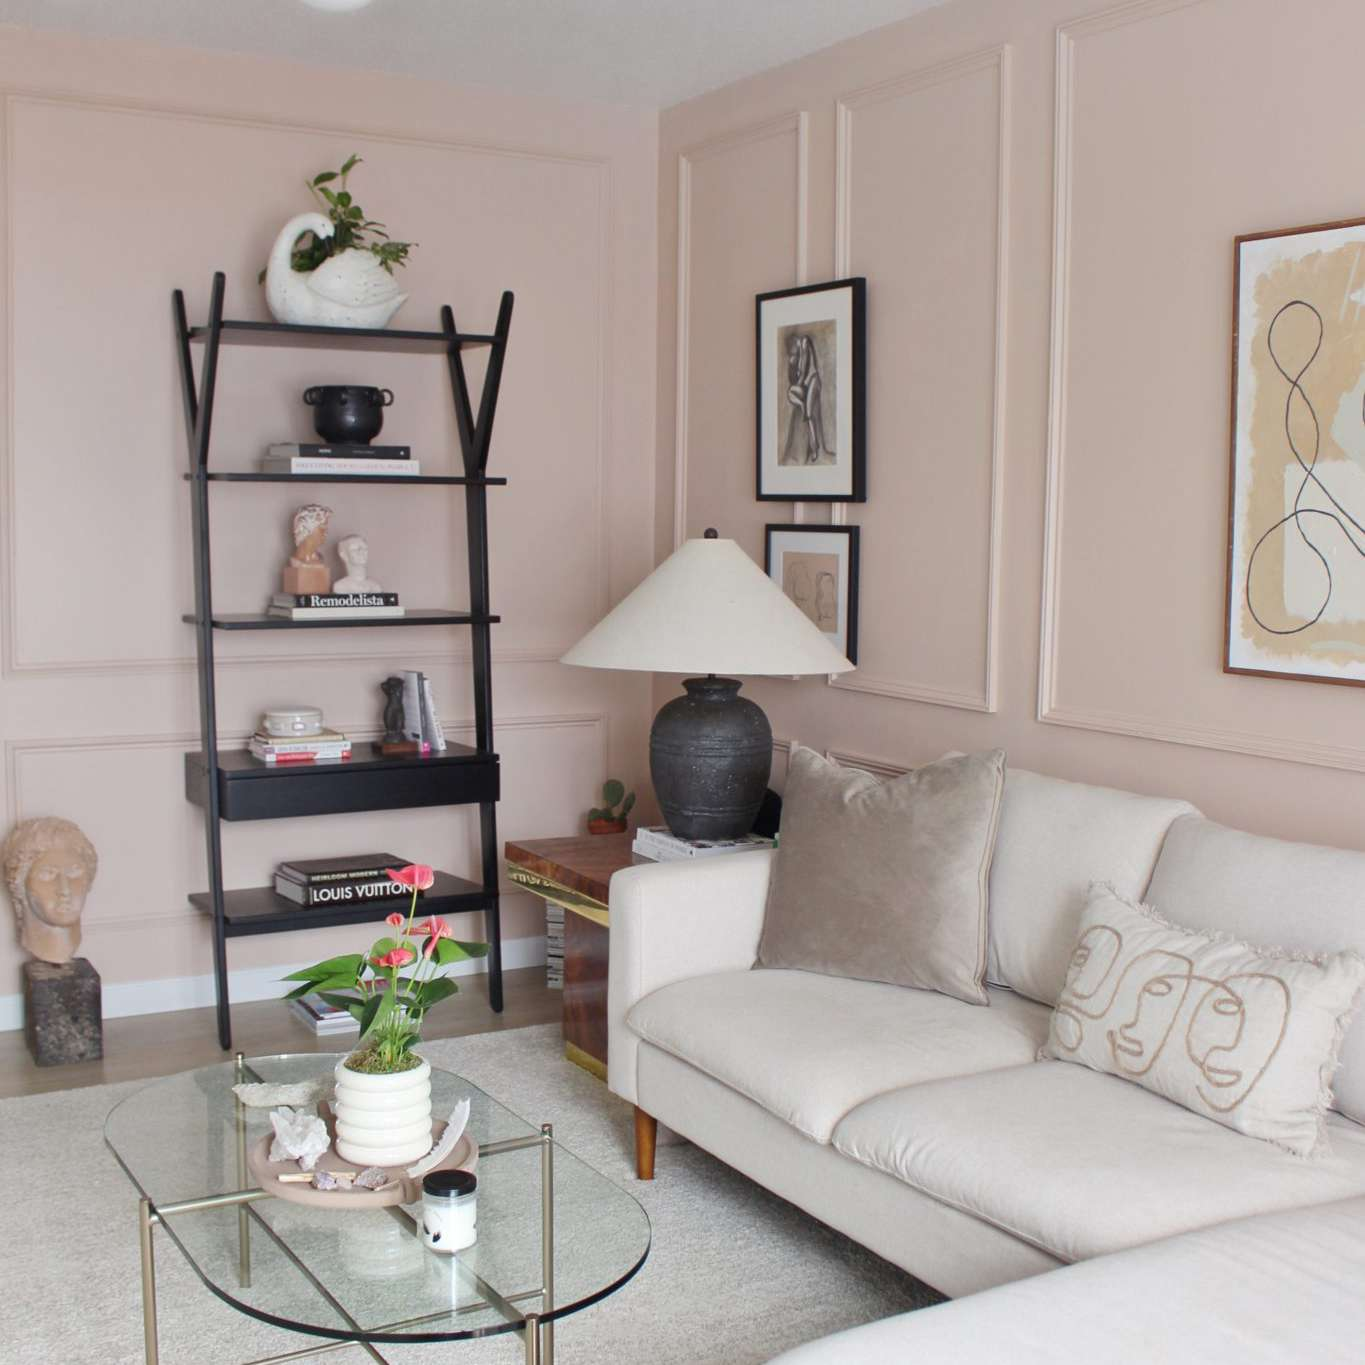 Modern pink living room with tiered bookshelf.